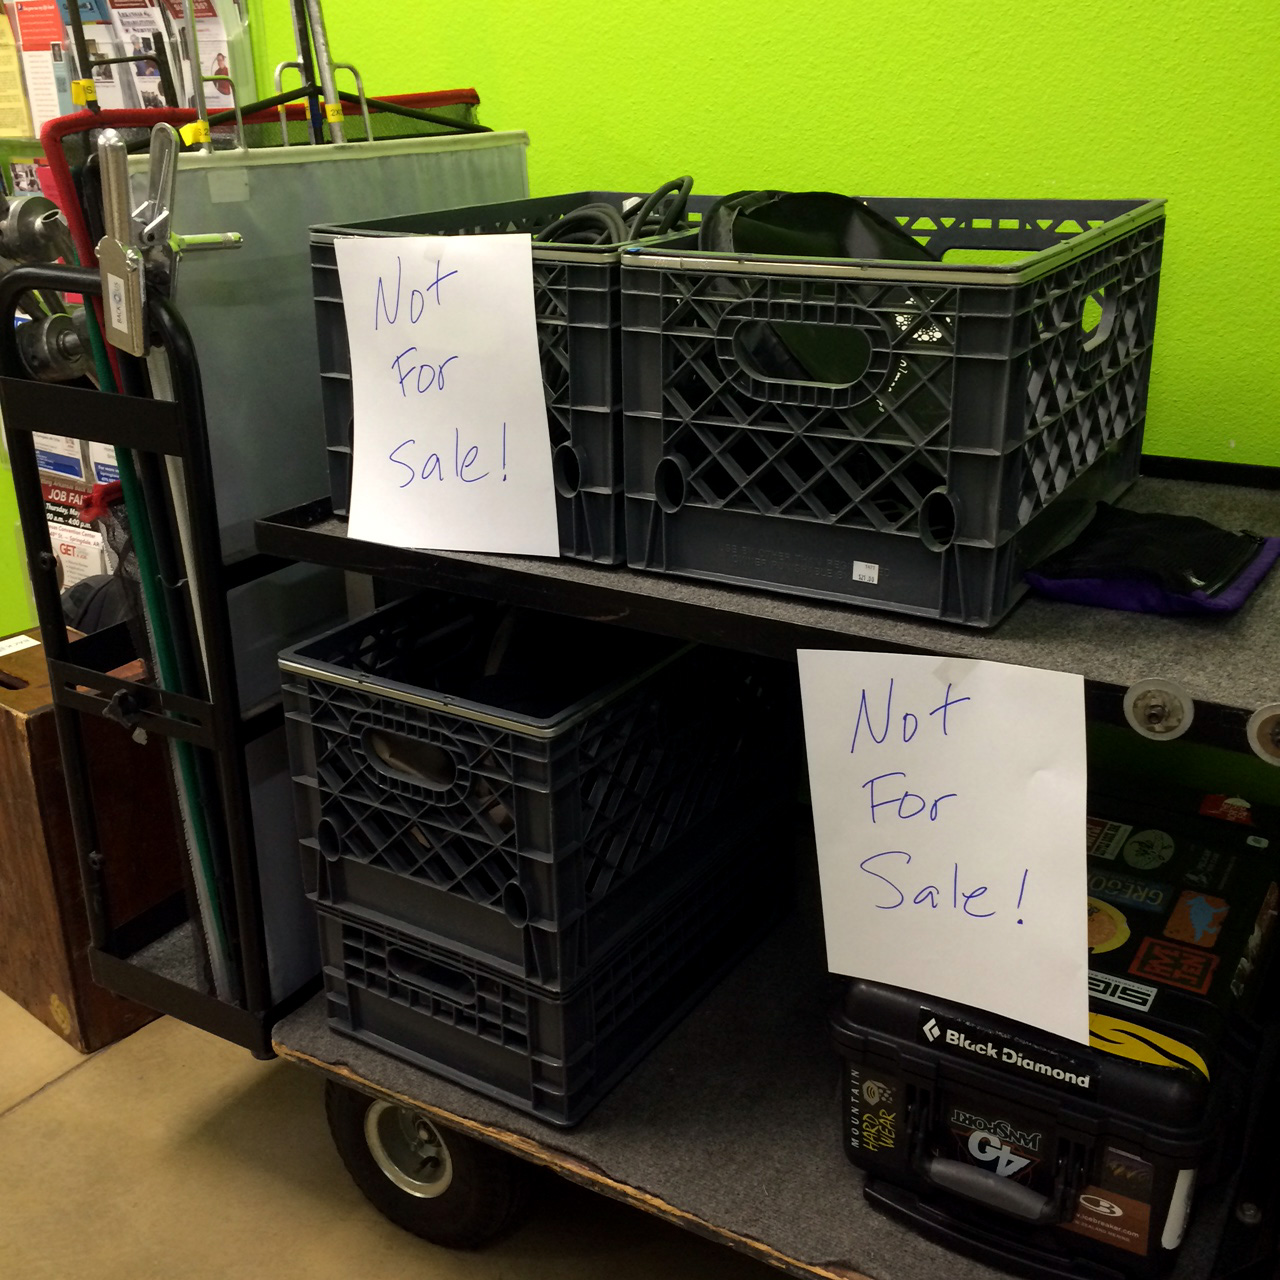 Production Carts are NOT FOR SALE!